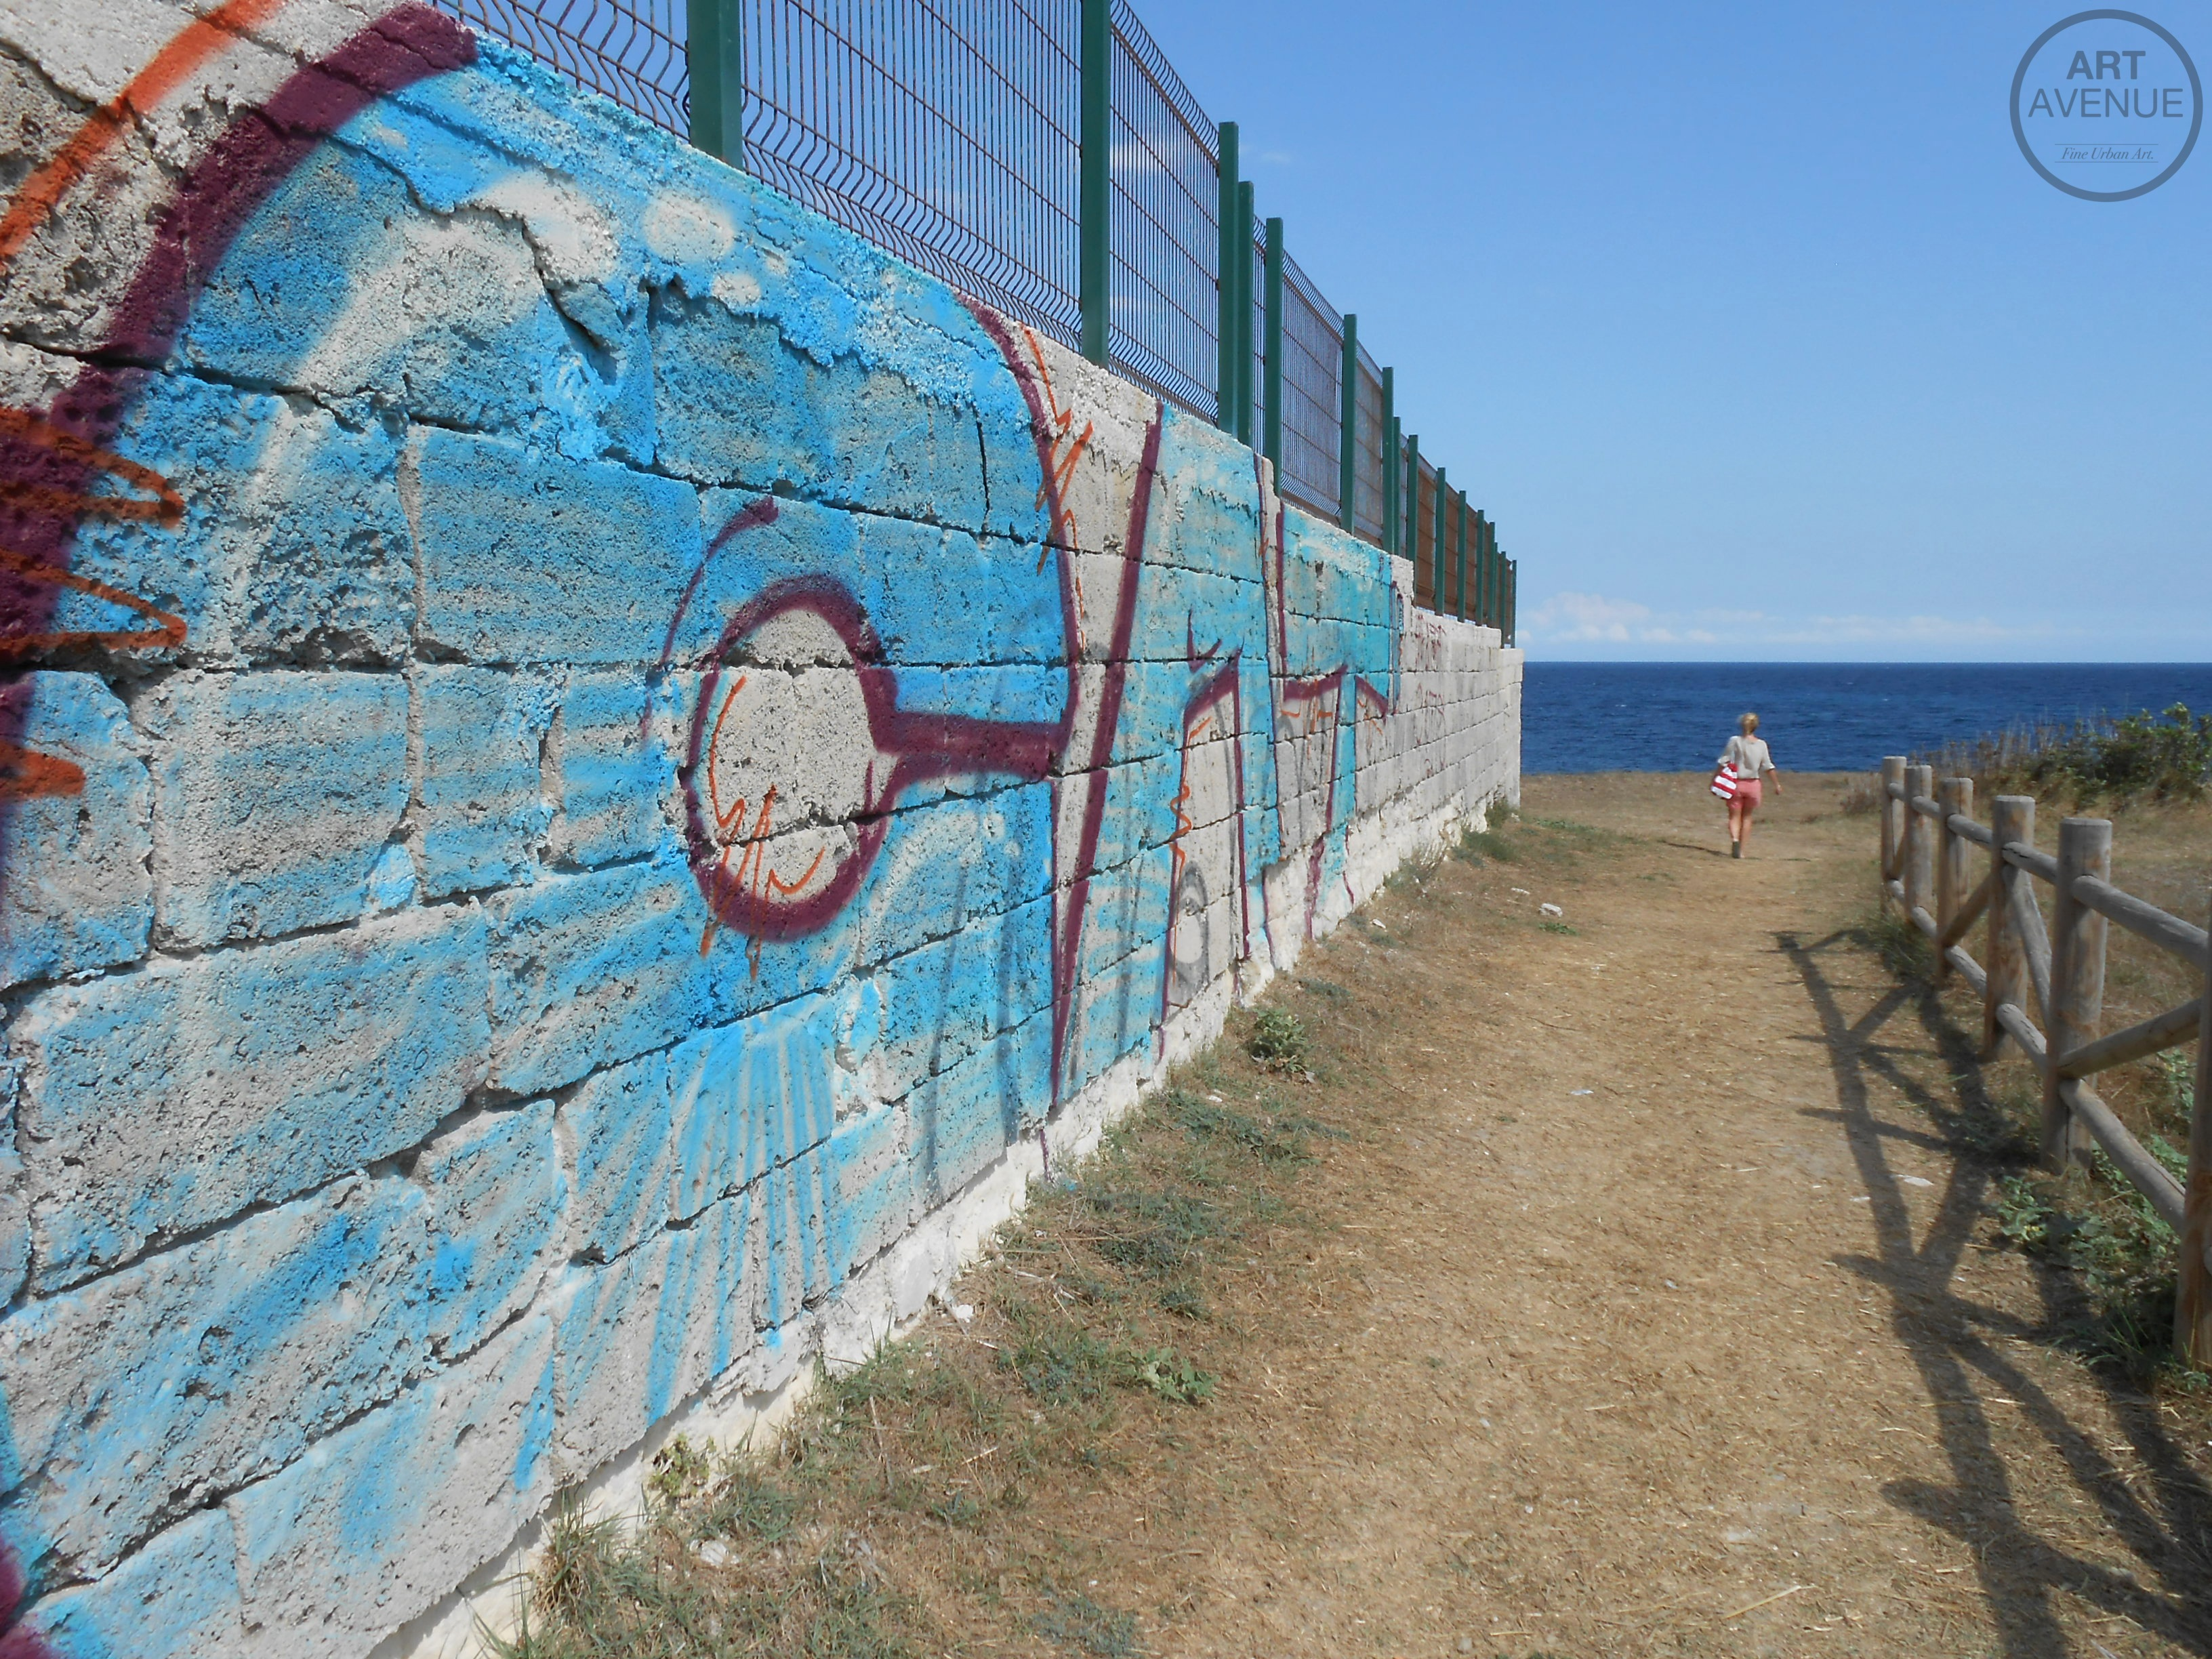 ART AVENUE Travel Report: Urban Art in Lecce and Apulia